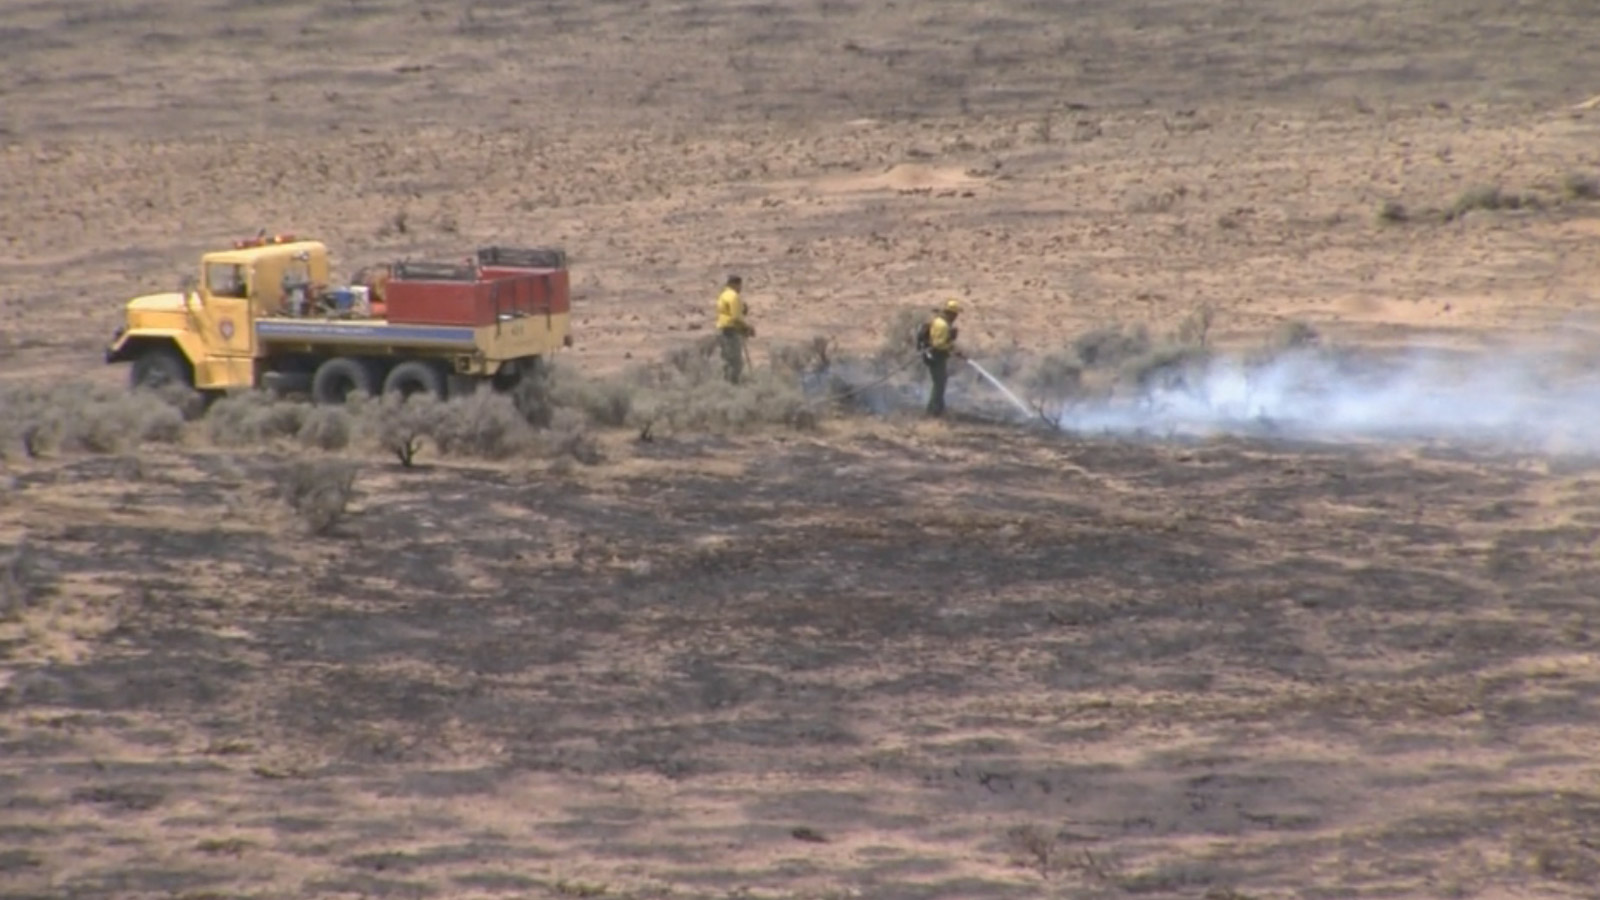 The Alkali Fire burning in Moffat County (credit: CBS)